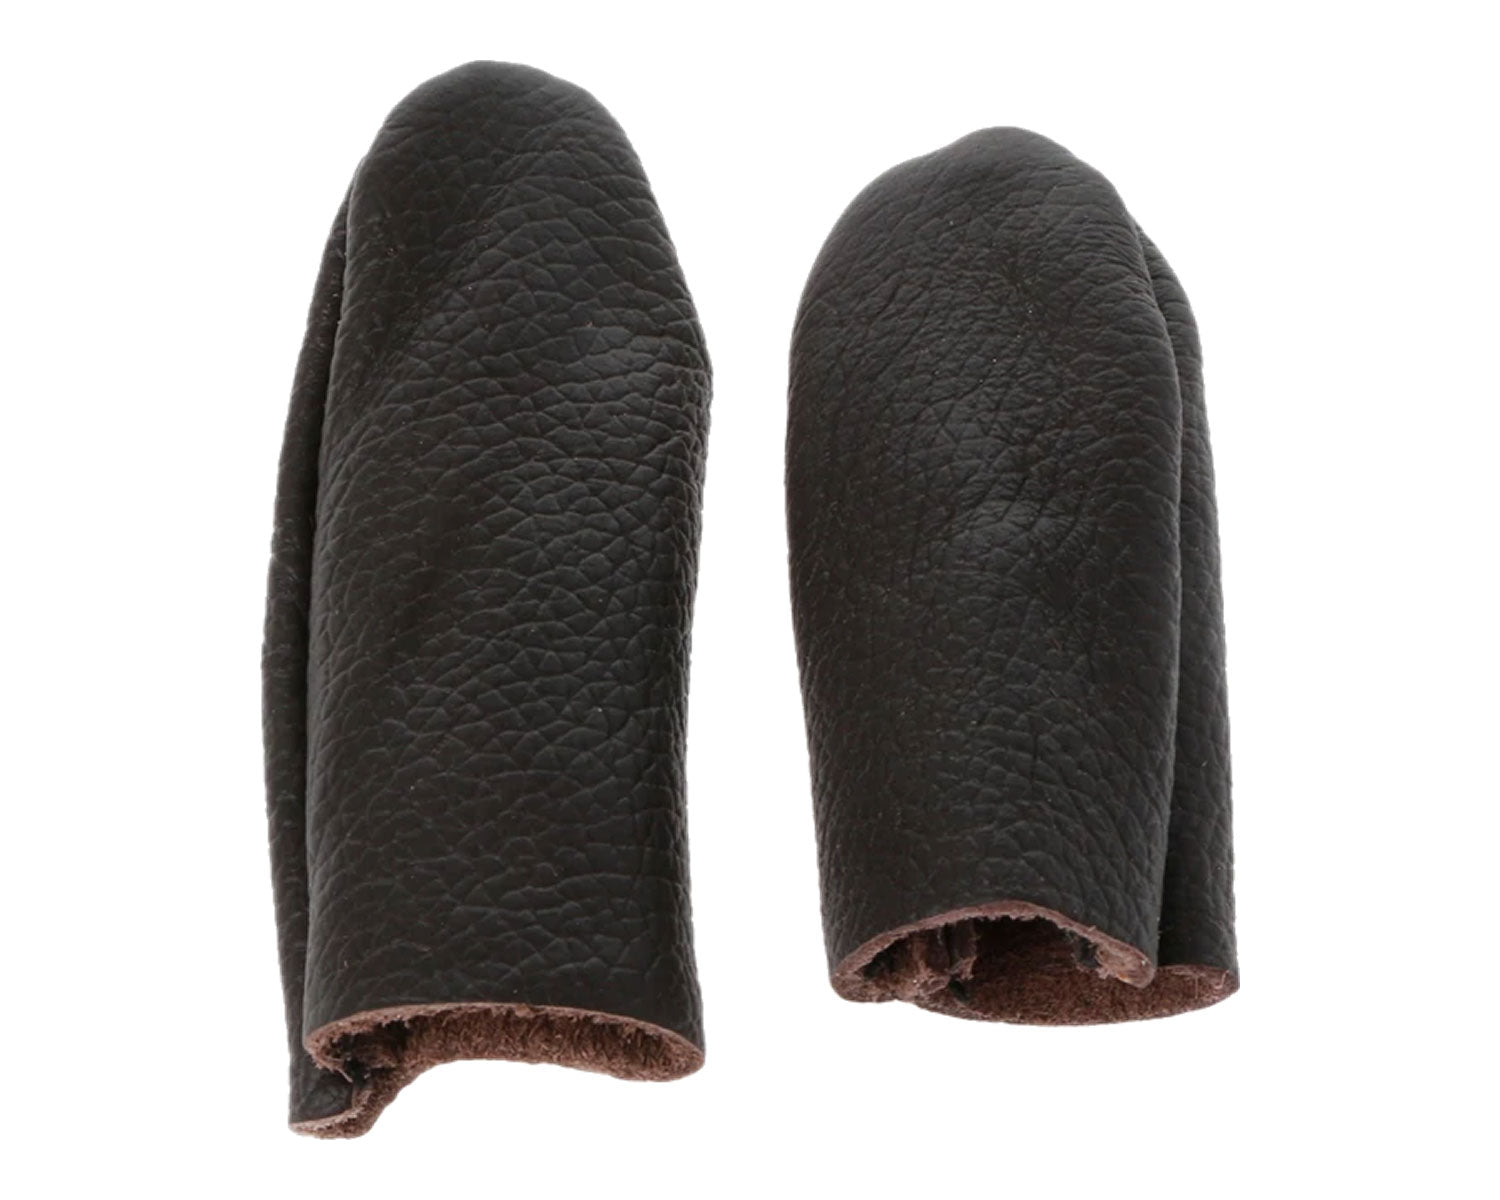 Needle Felting Finger Protectors, Finger Guards, Leather - 10 Pack